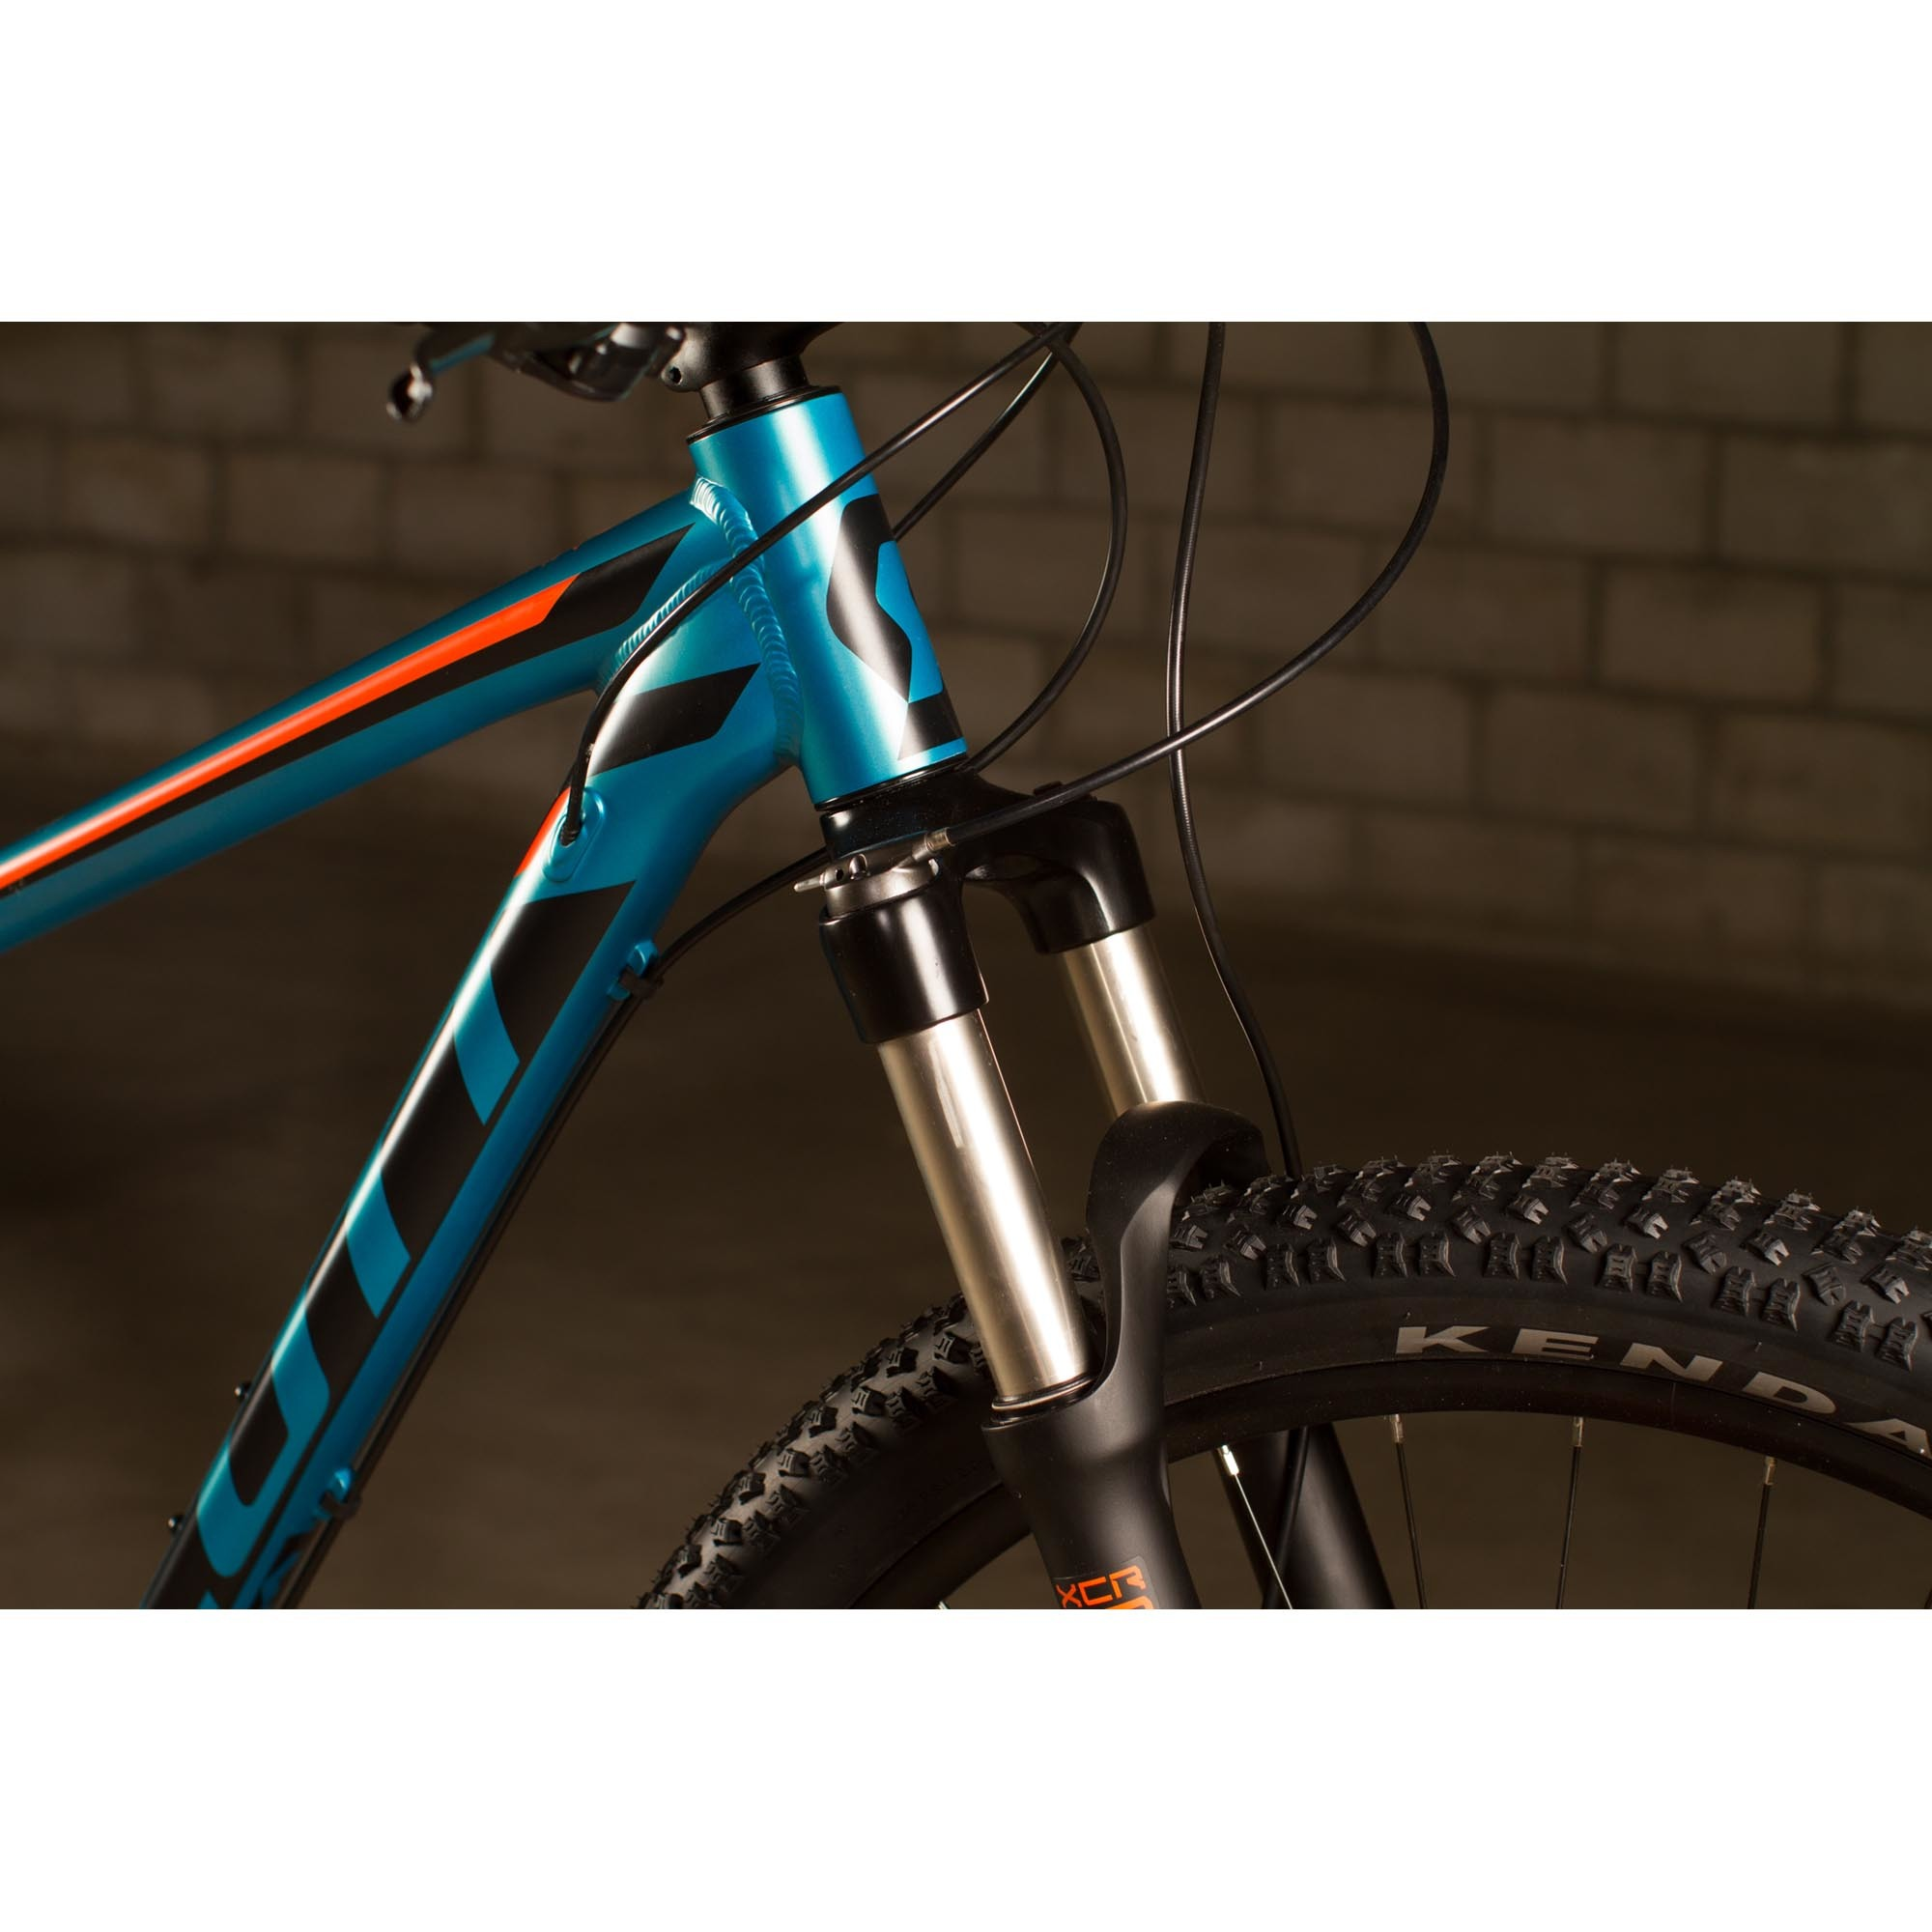 SCOTT Aspect 730 blue/orange Bike